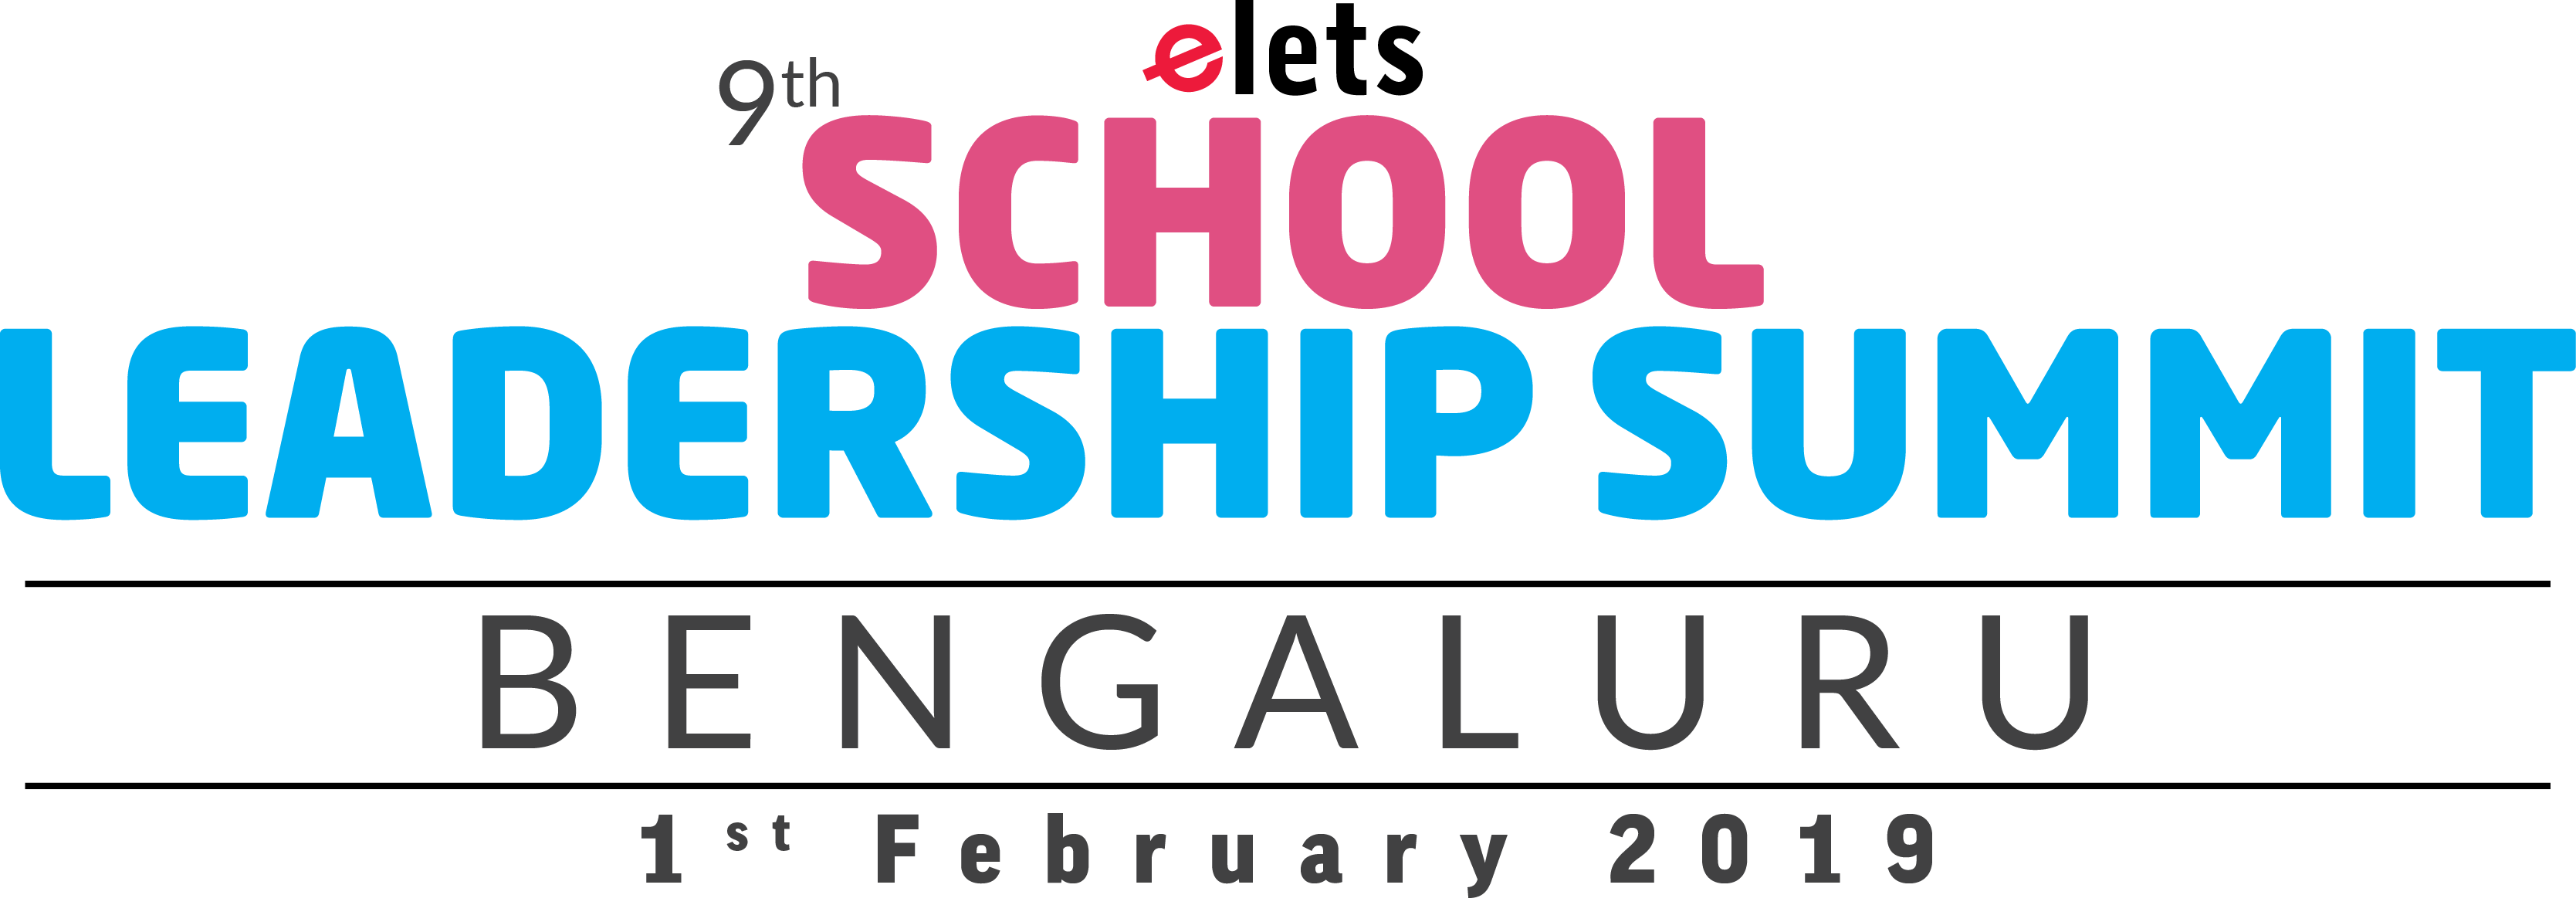 School Leadership Summit, Bengaluru